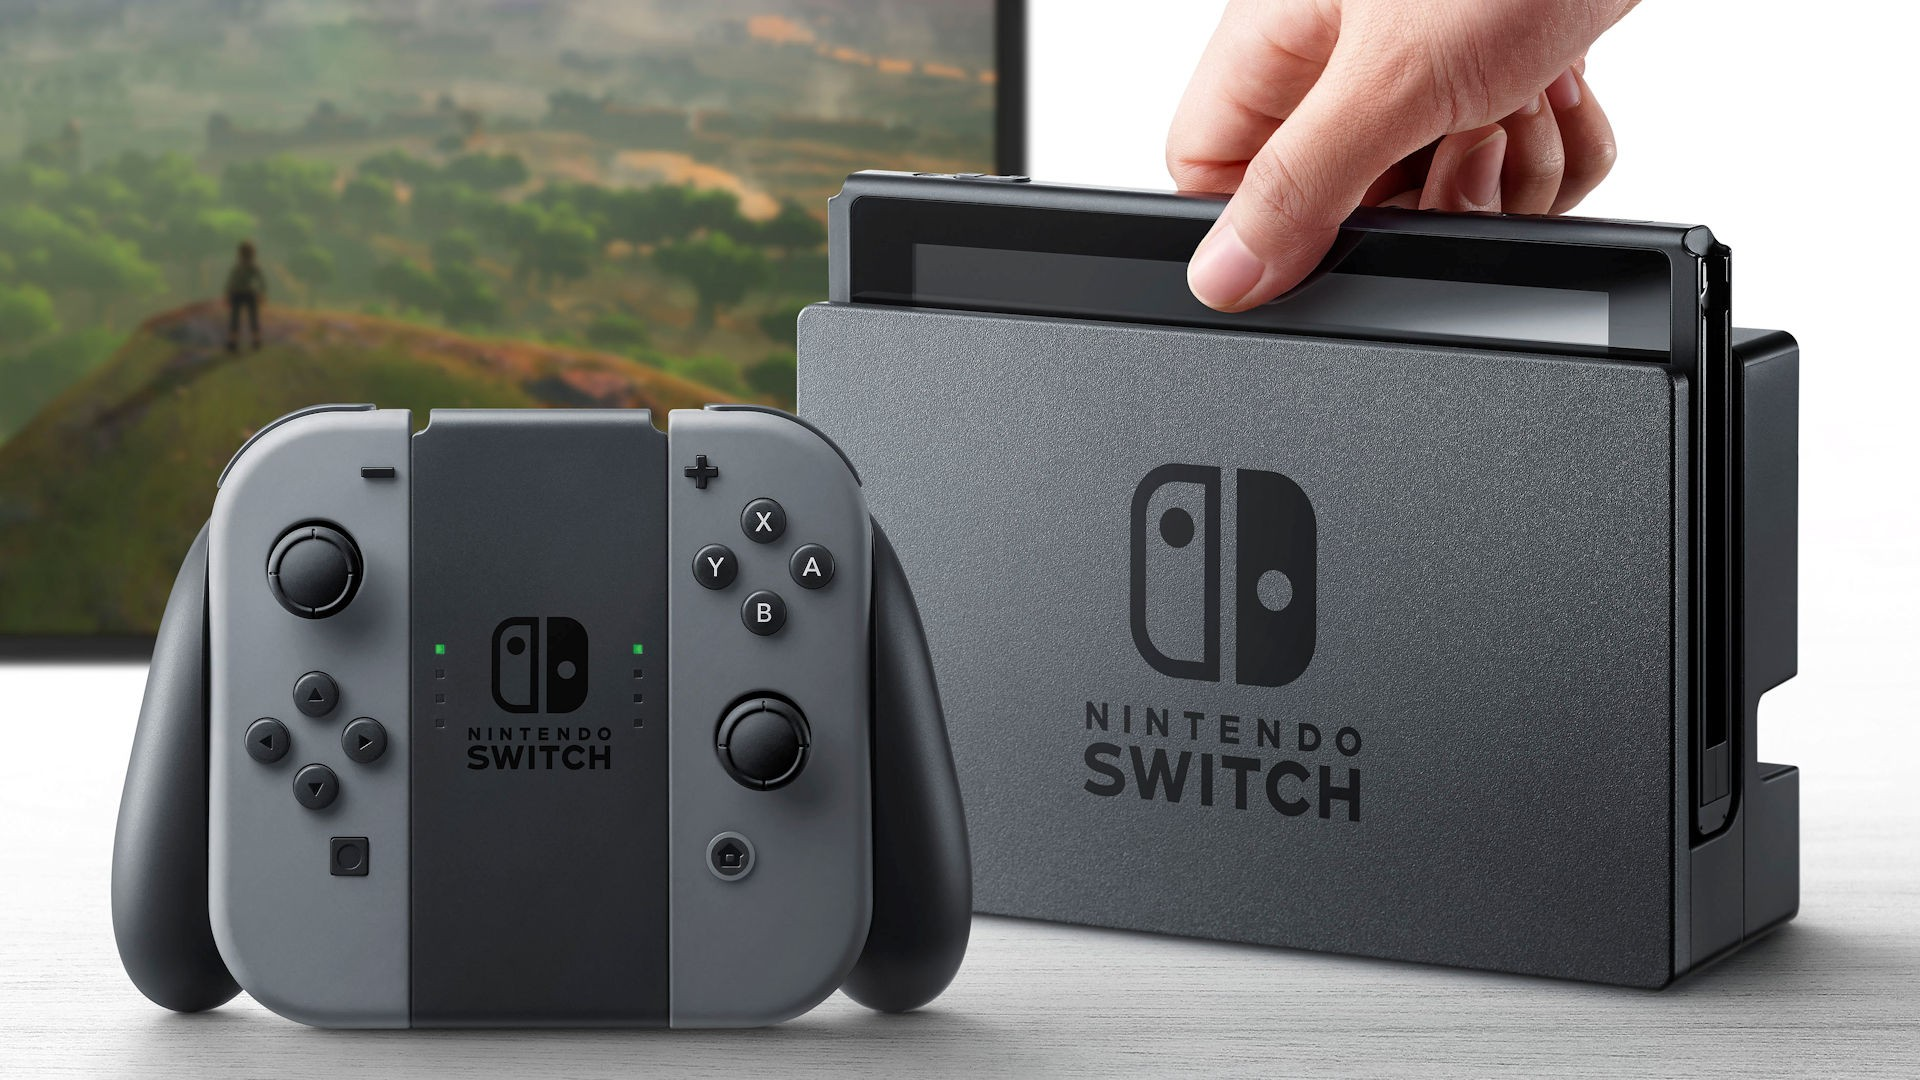 Nintendo-Switch-Console-2